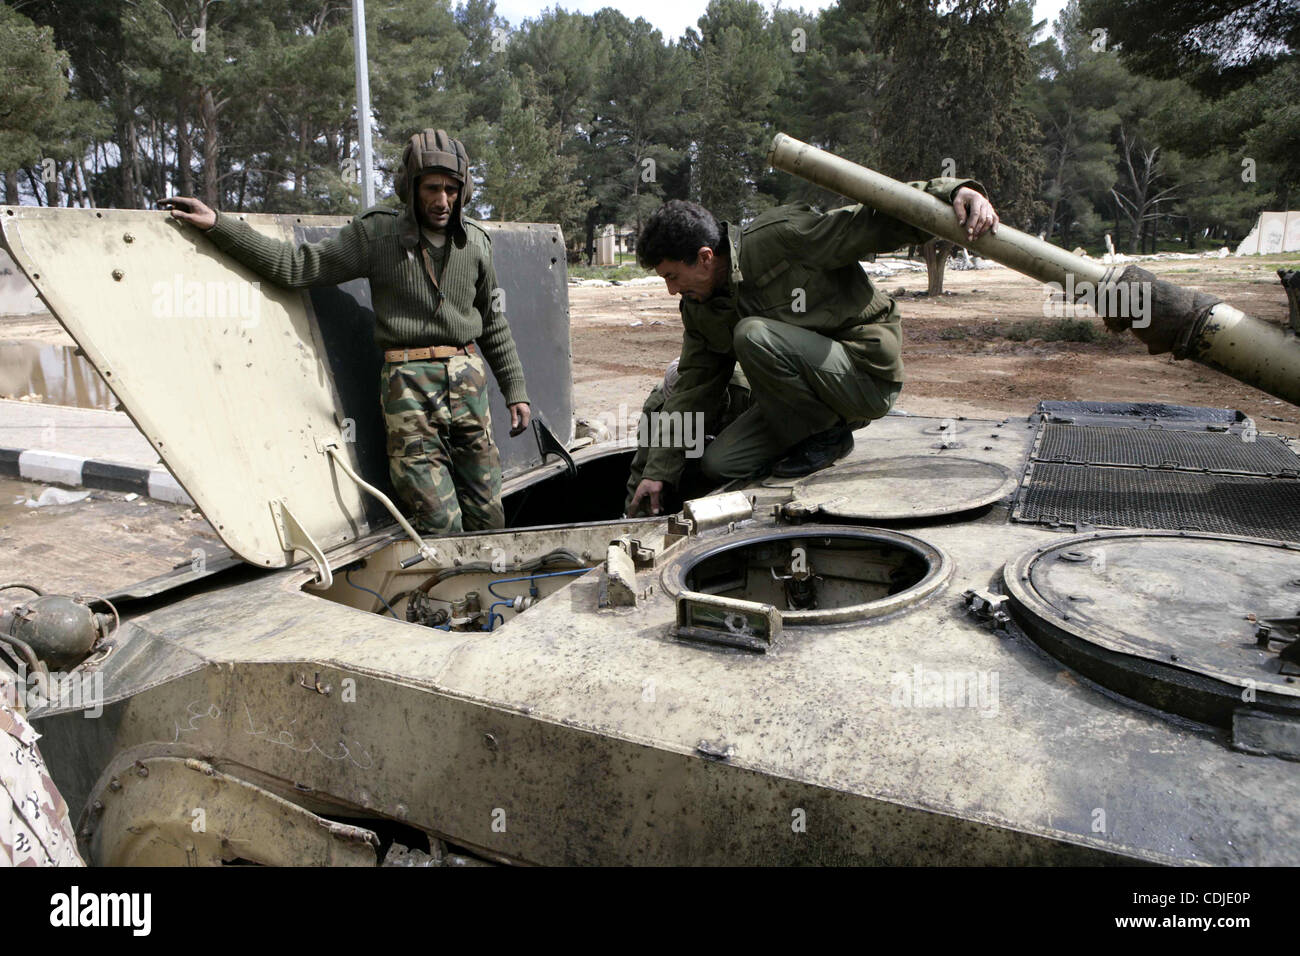 Anti-government protesters stand on an army tank near a square where people are protesting in ALbedi city, Libya, - Stock Image